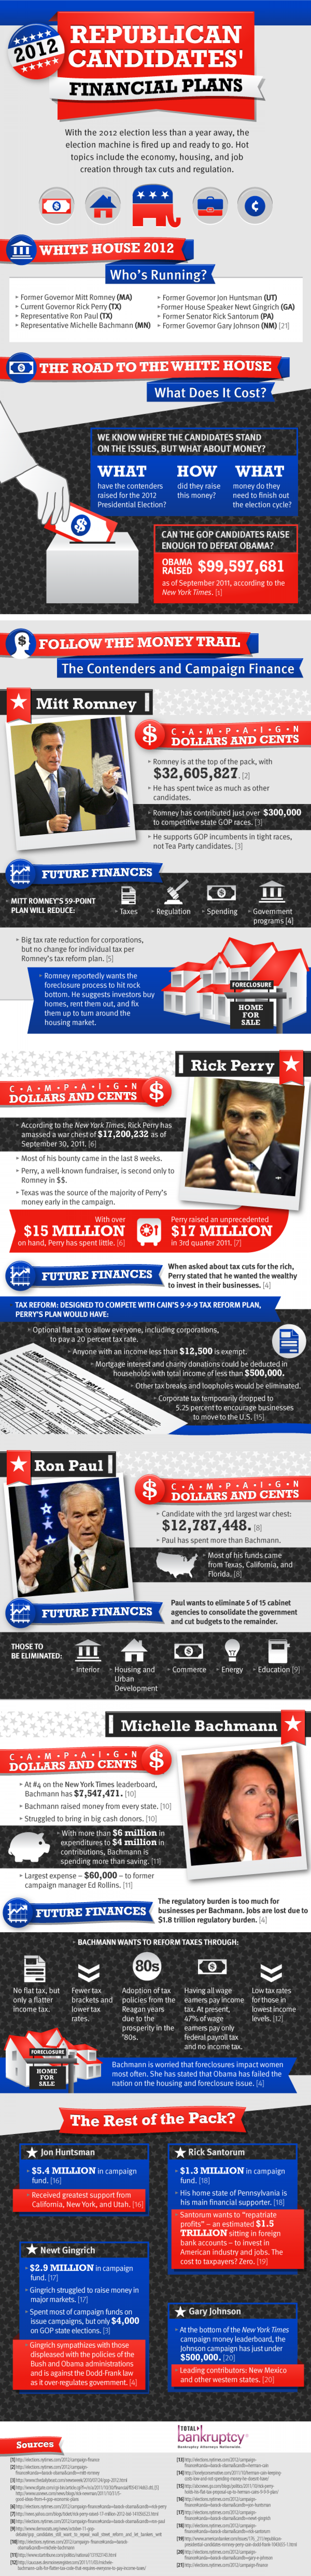 Republican Candidates' Financial Plans Infographic